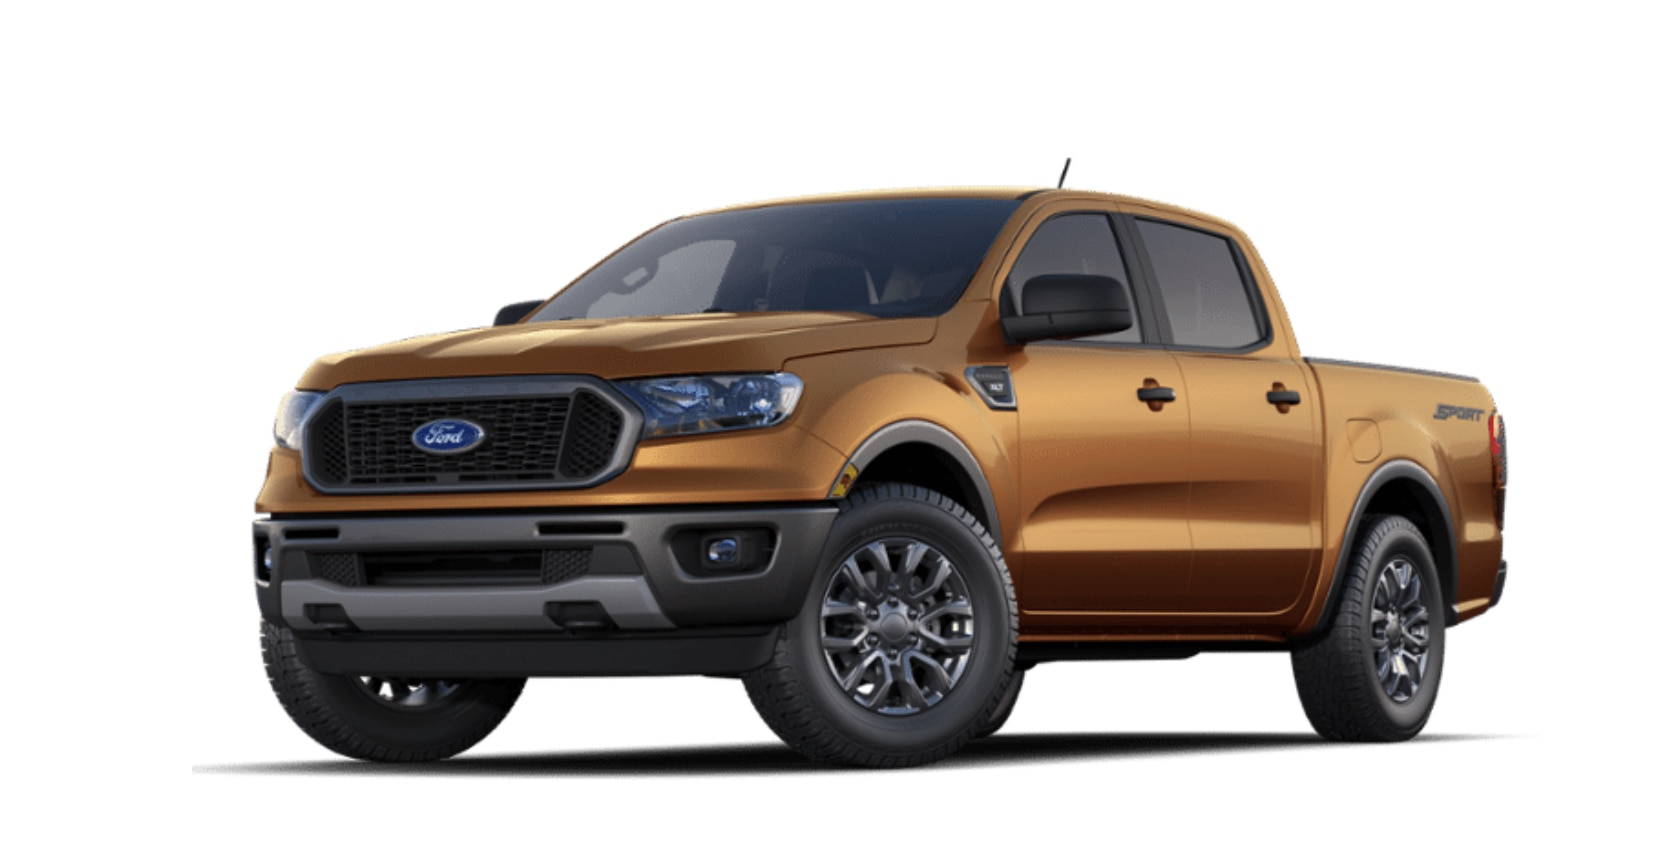 Ford Ranger XLT SuperCrew 4x4 2020